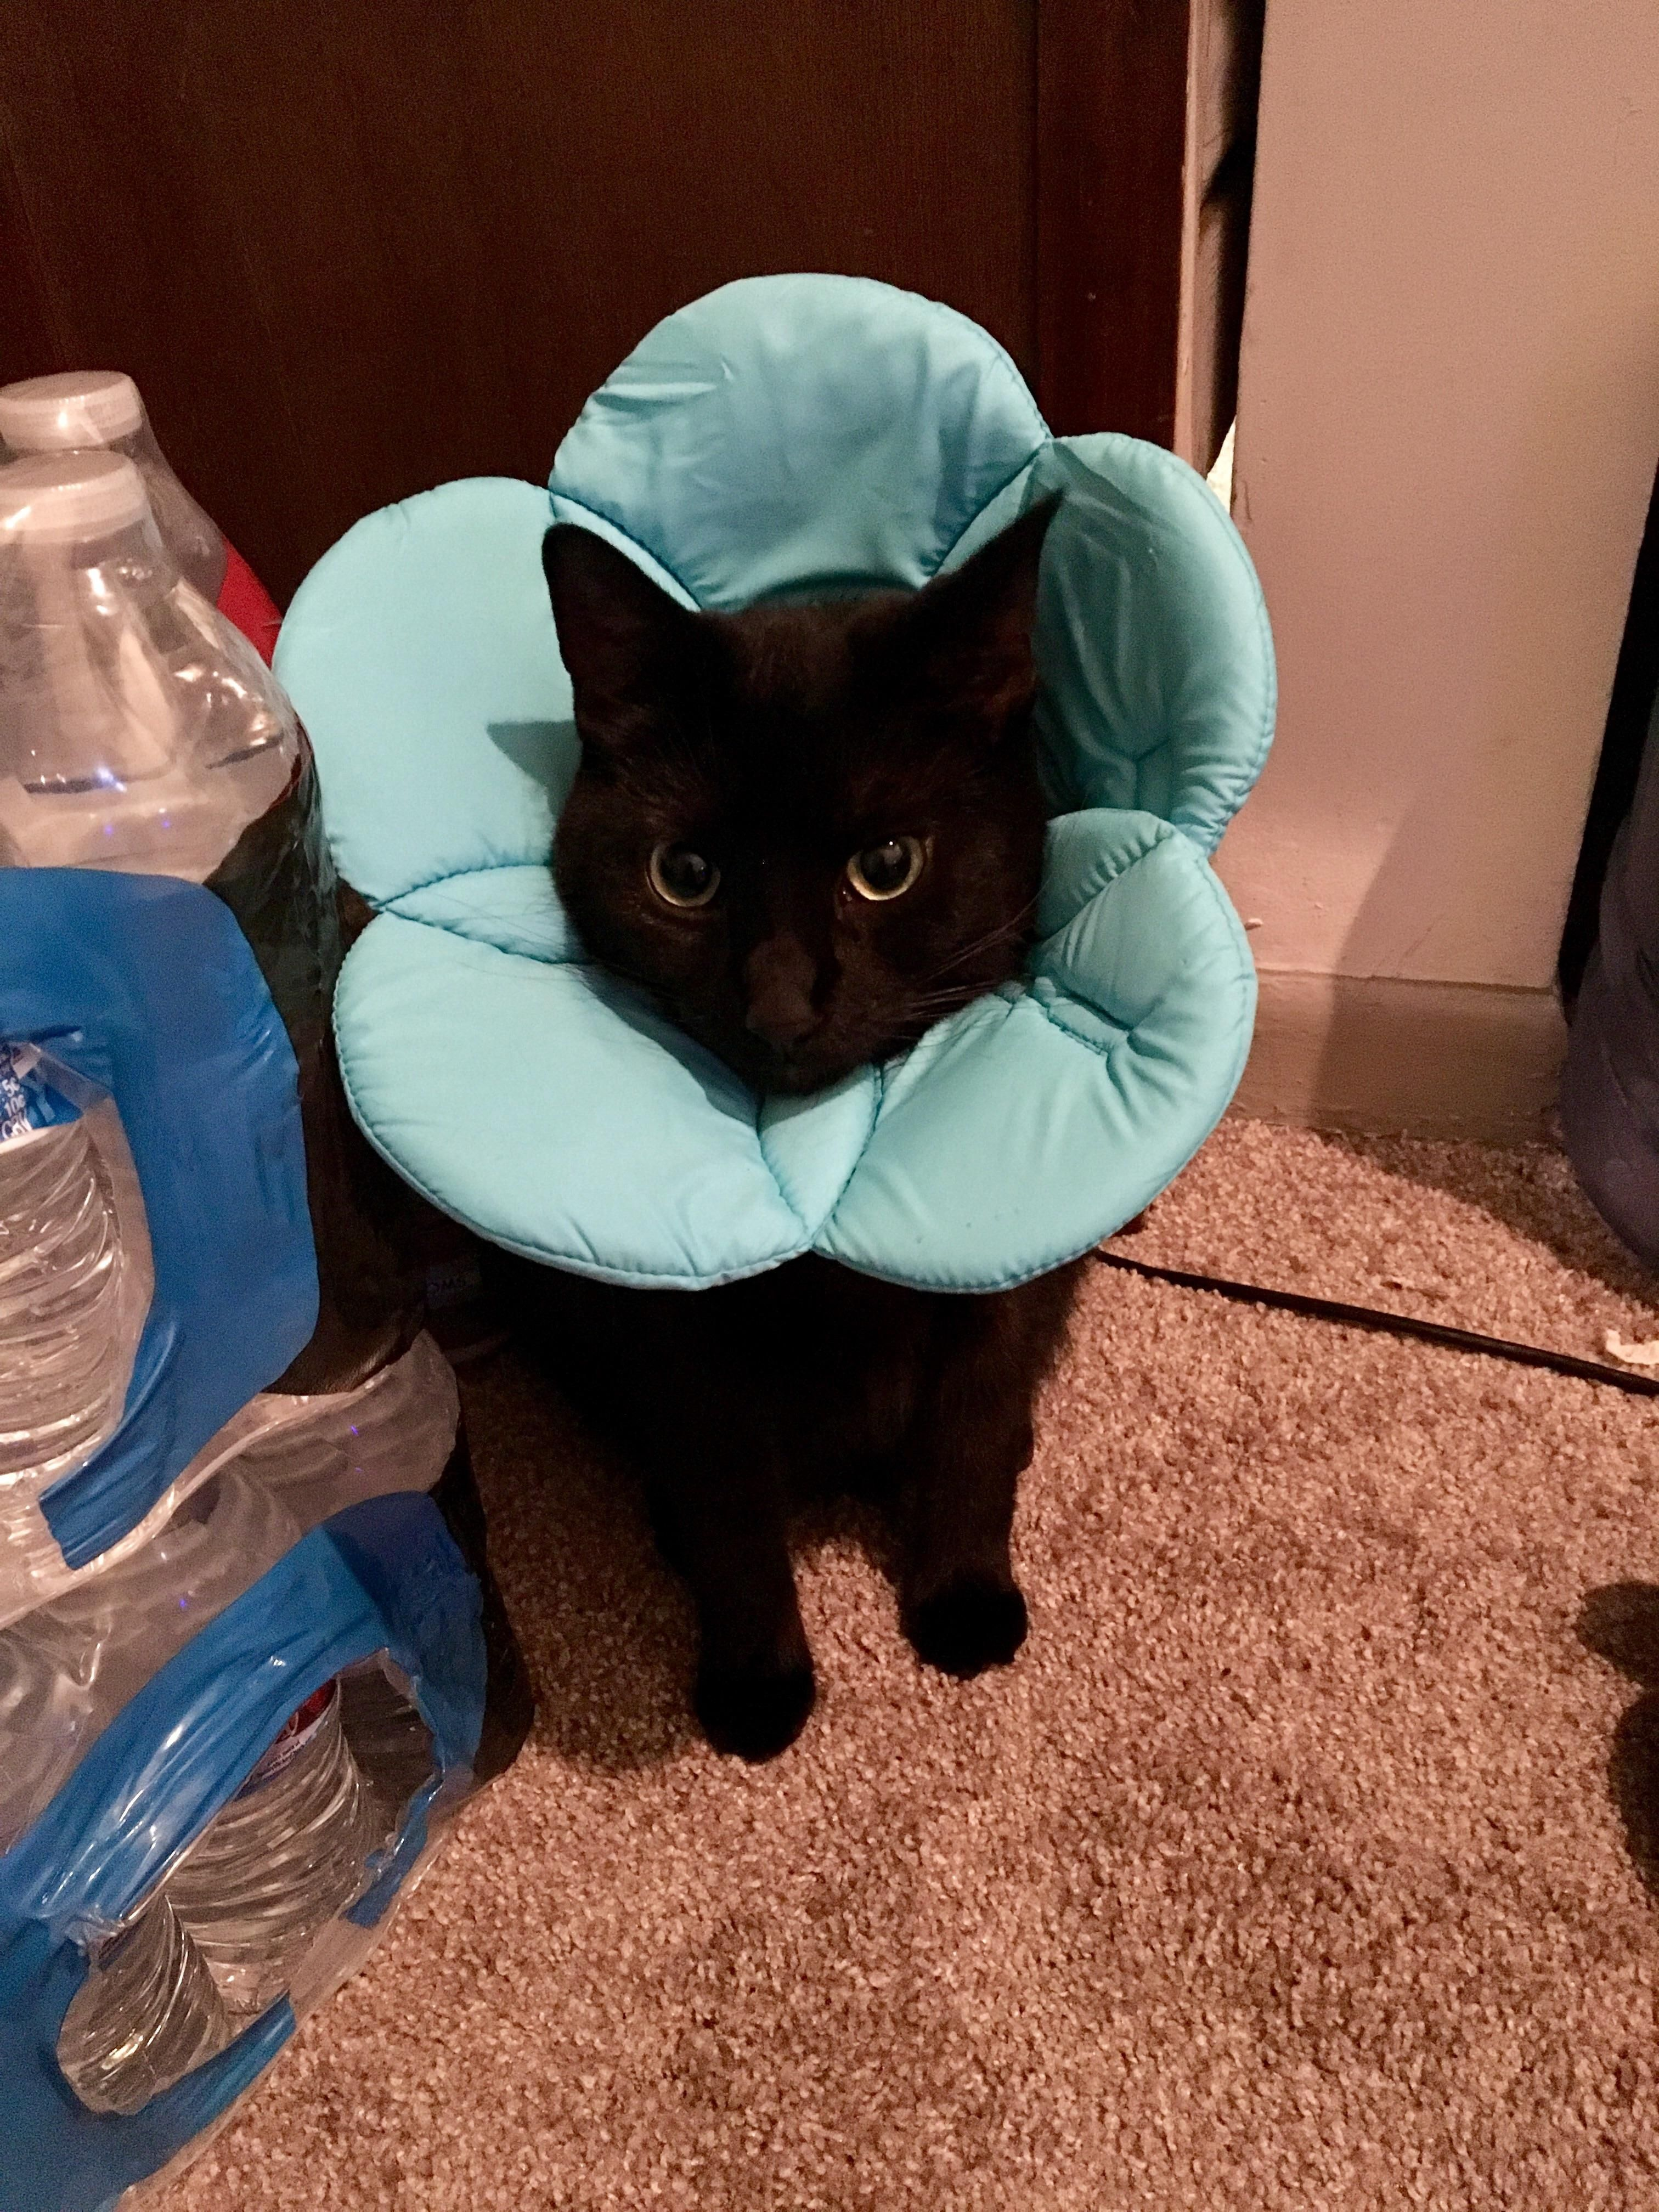 Cone Of Shame Disguised As A Flower Http Ift Tt 2rclk08 Cat Collars Cone Of Shame Cute Animals